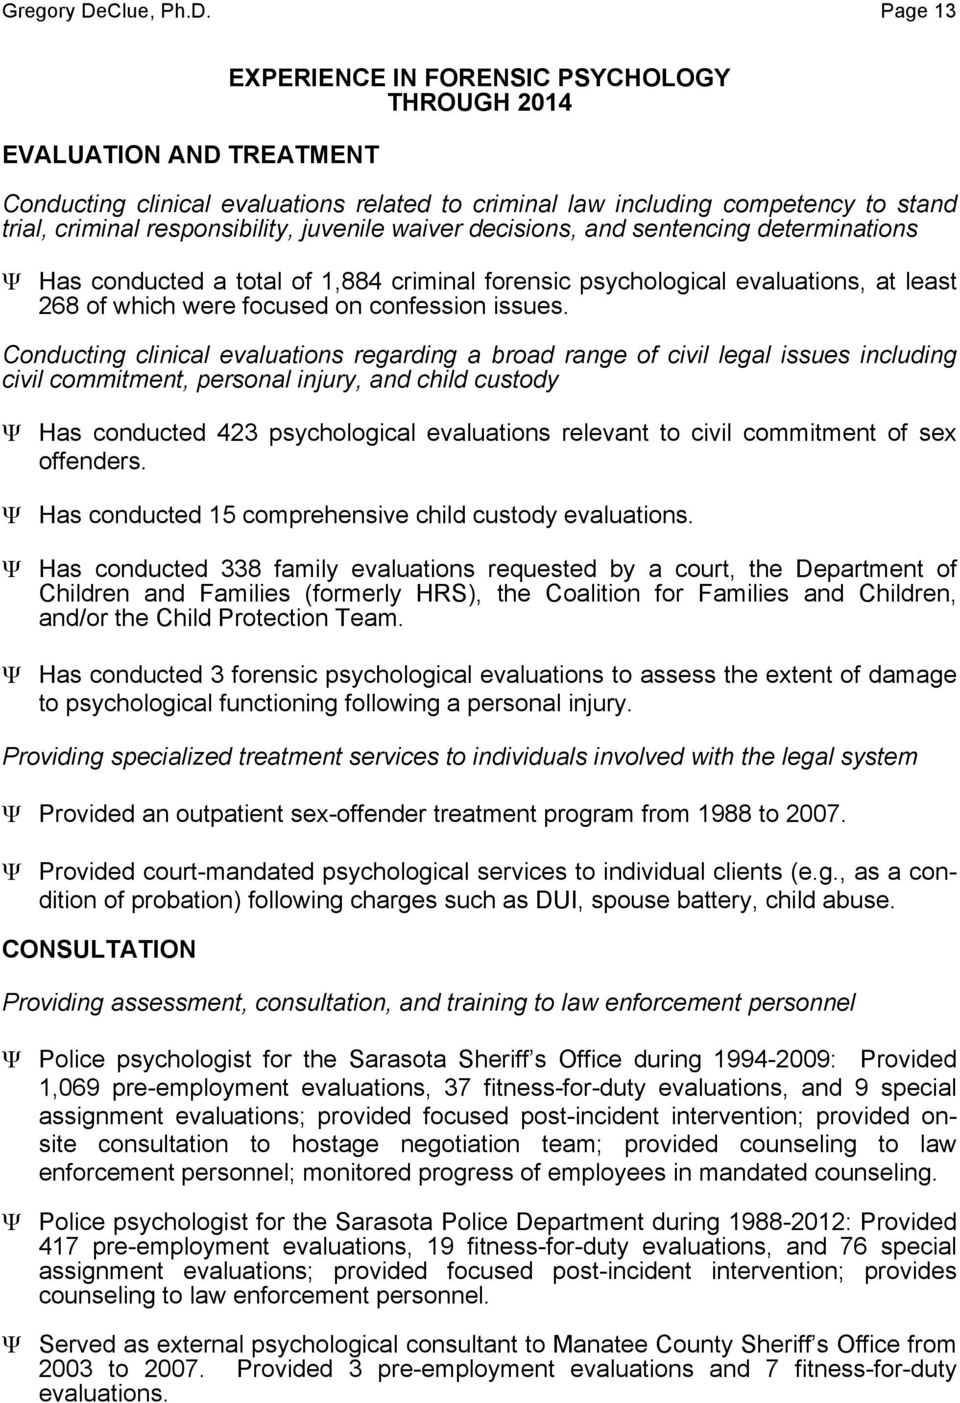 Page 13 EVALUATION AND TREATMENT EXPERIENCE IN FORENSIC PSYCHOLOGY THROUGH 2014 Conducting clinical evaluations related to criminal law including competency to stand trial, criminal responsibility,